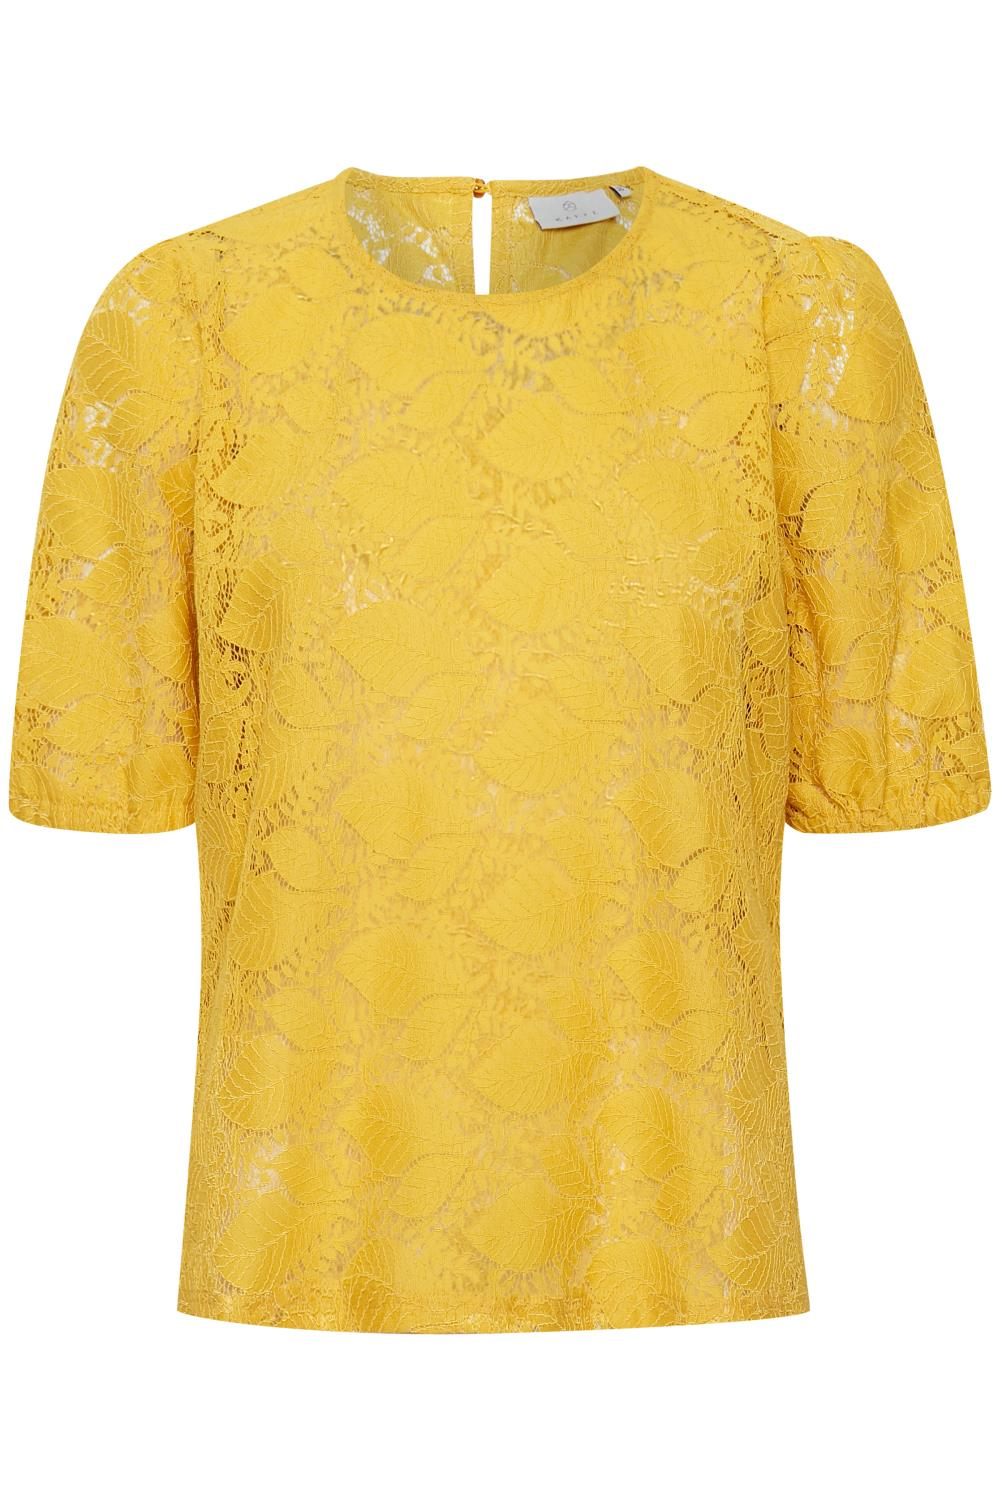 Kaffe Damla Lace 1/2 sleeve, golden rod